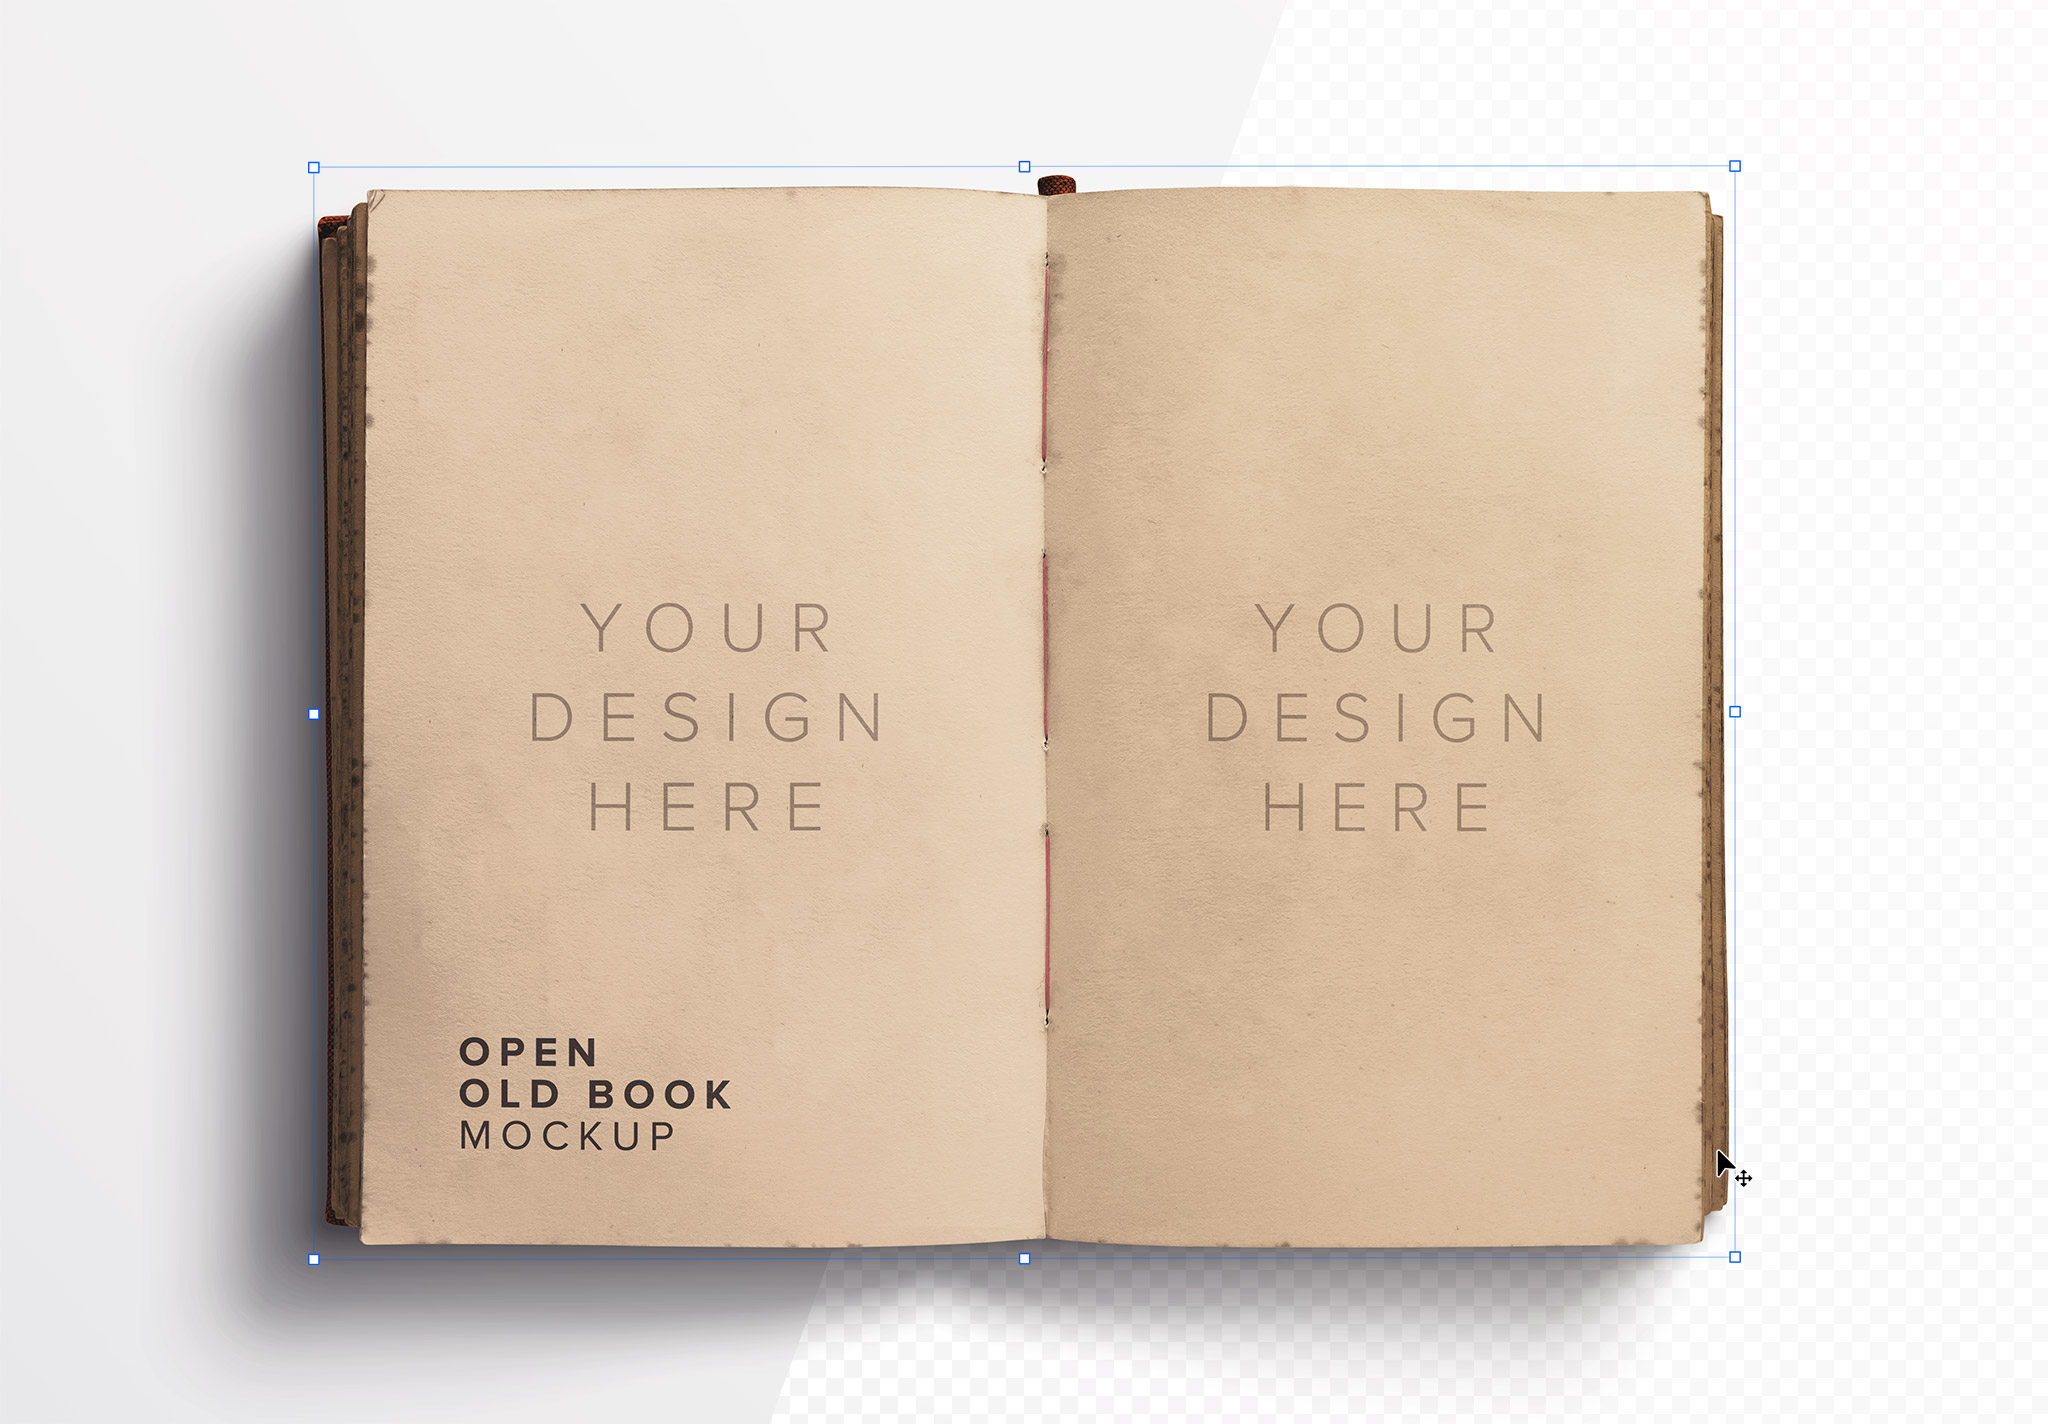 Open Old Book Mockup image01